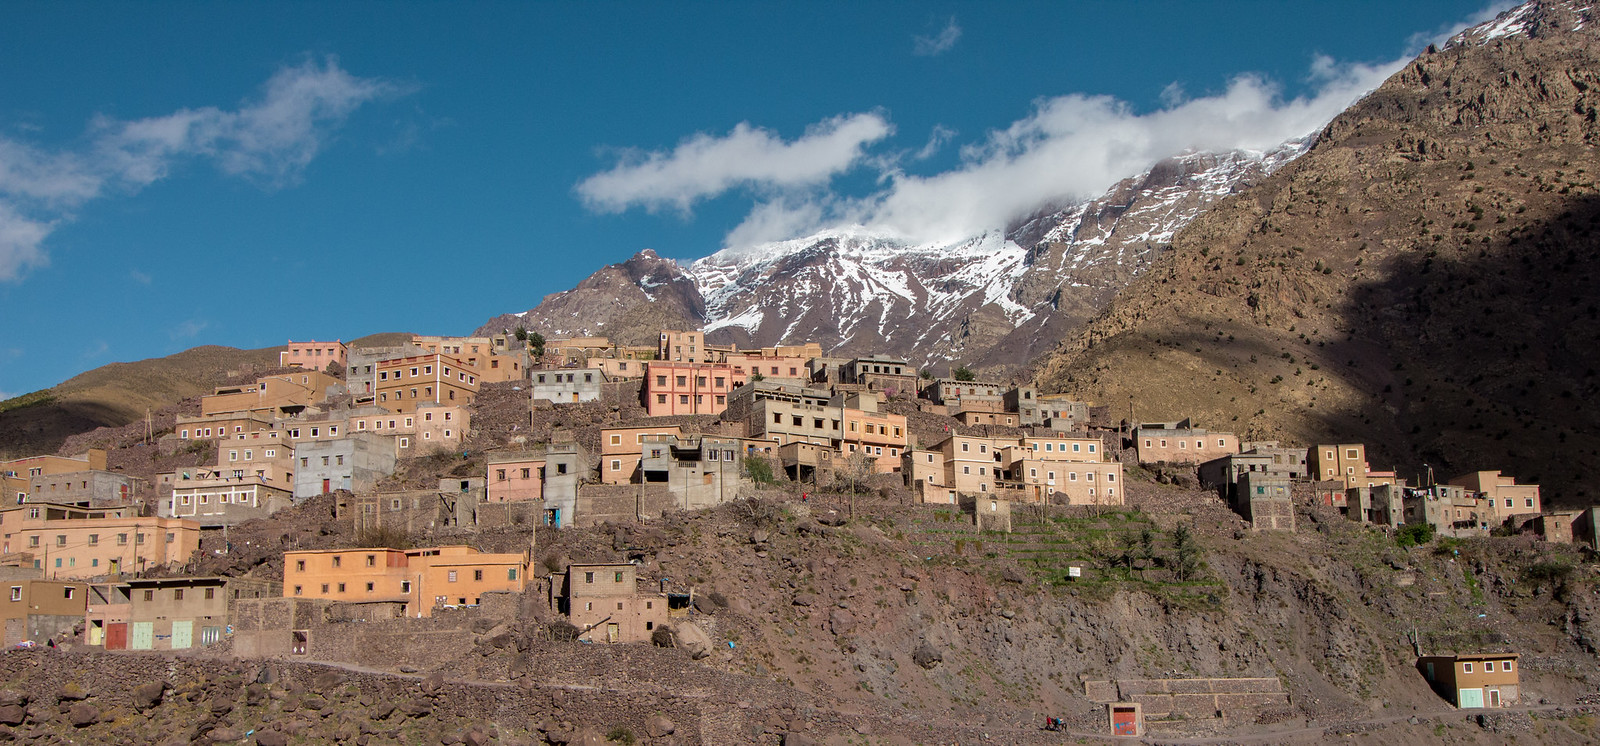 A village in the Imlil valley, Morocco